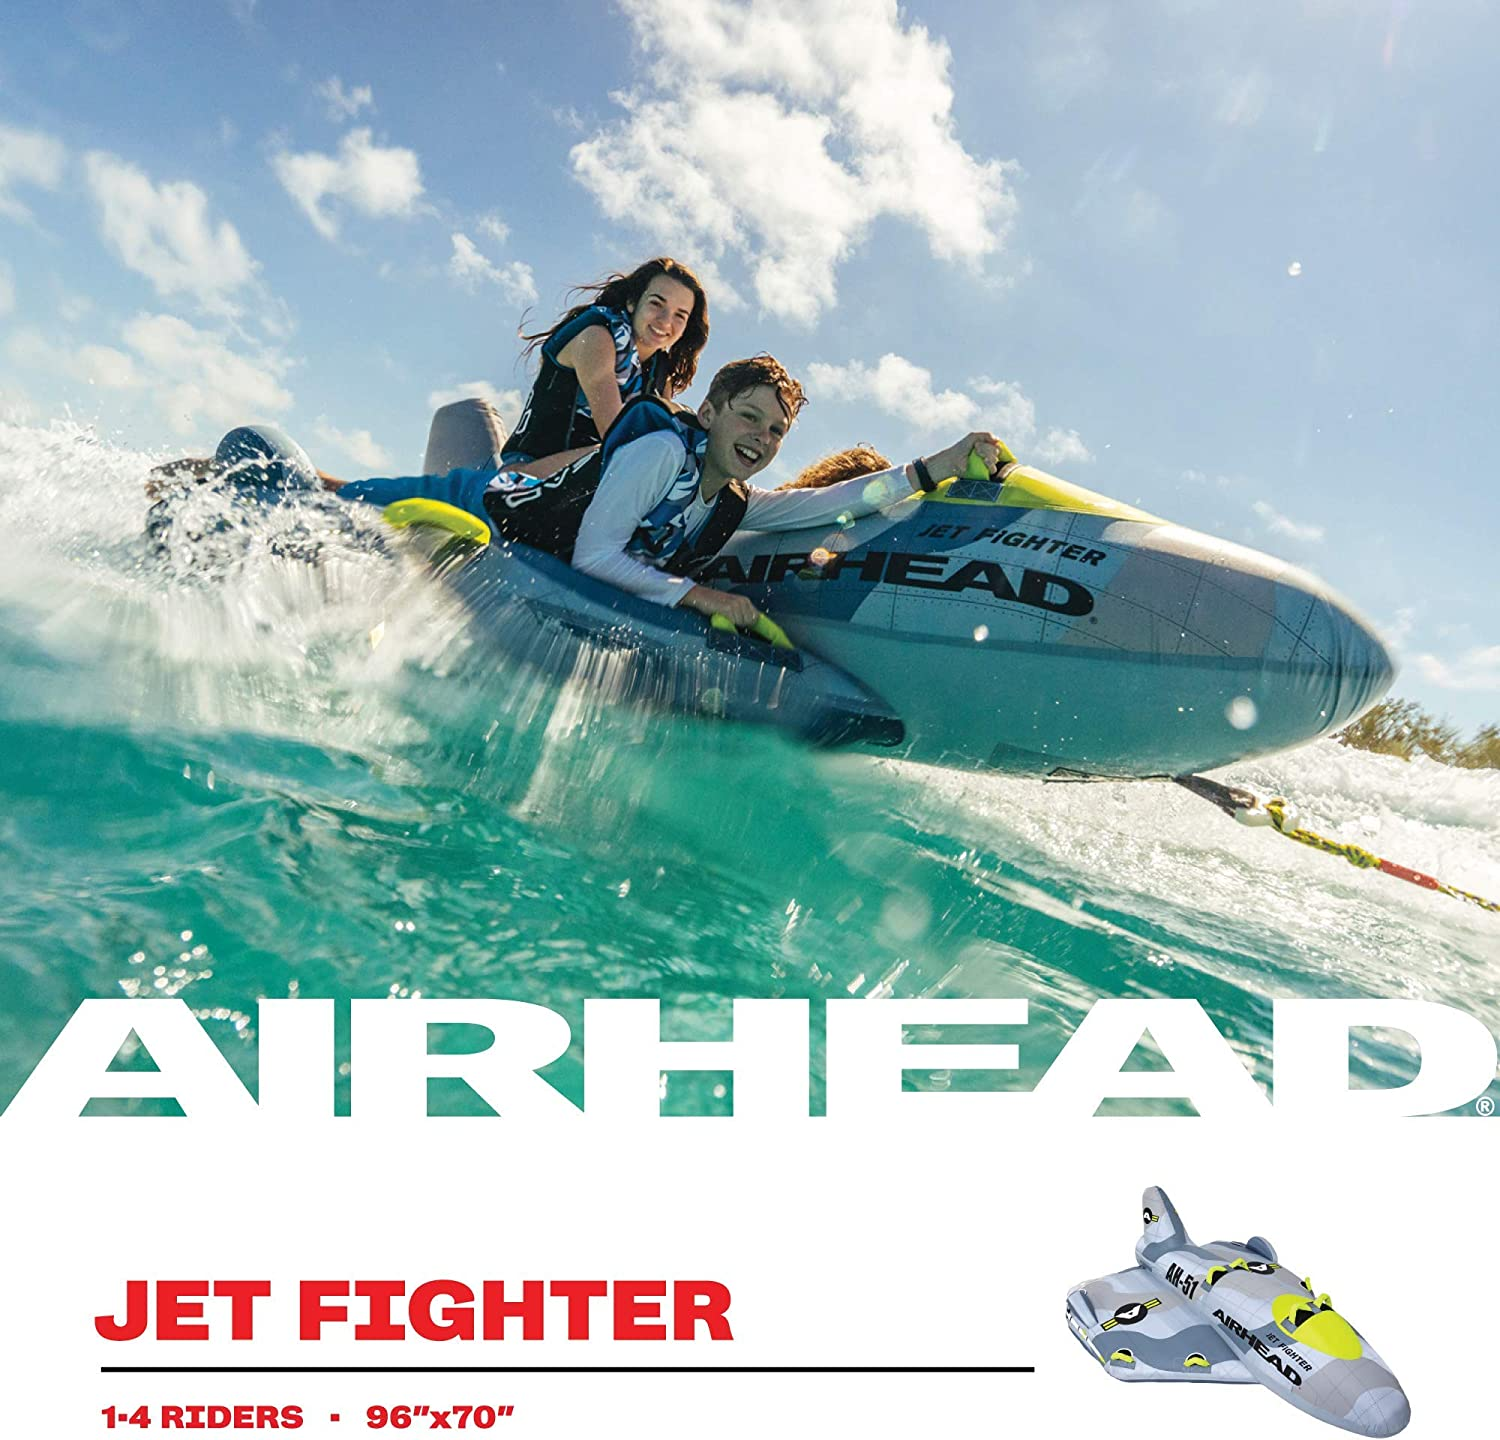 Airhead Jet Fighter 1-4 Rider Towable Tube for Boating